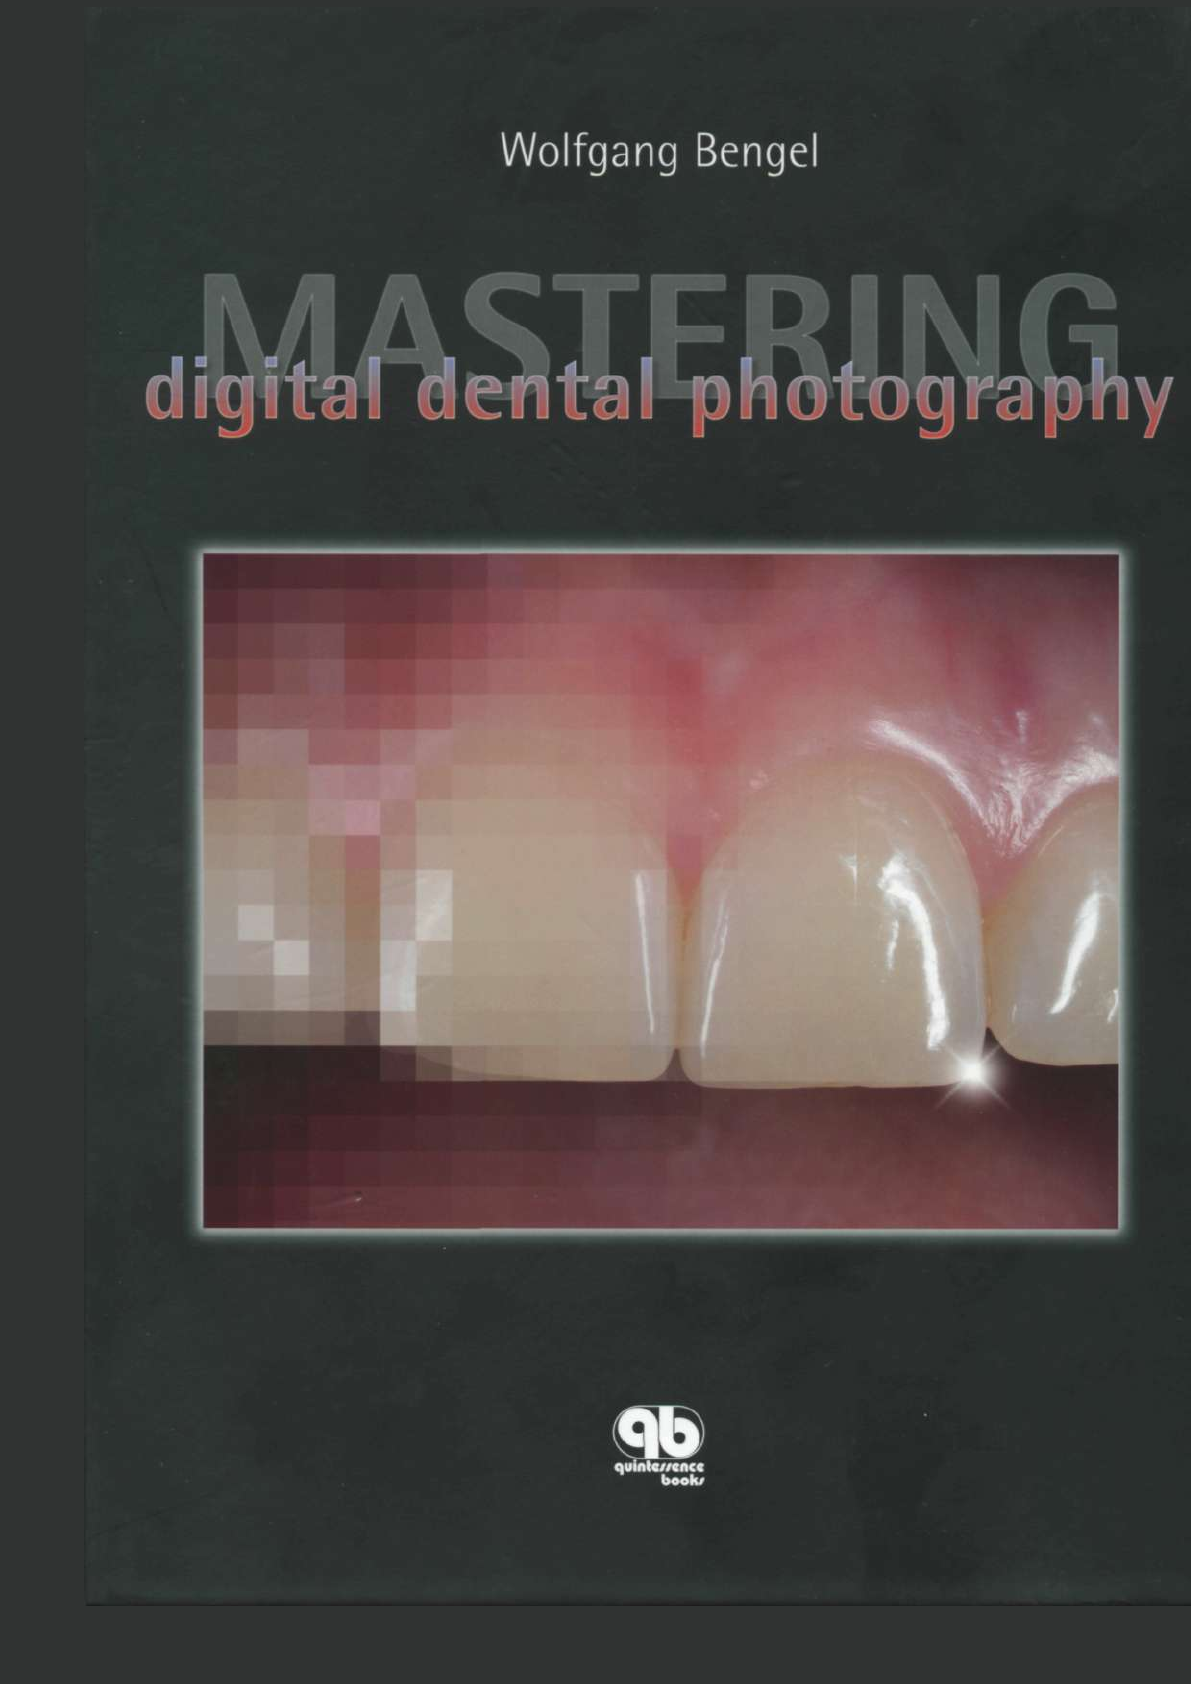 Buy mastering digital dental photography book online at low prices.